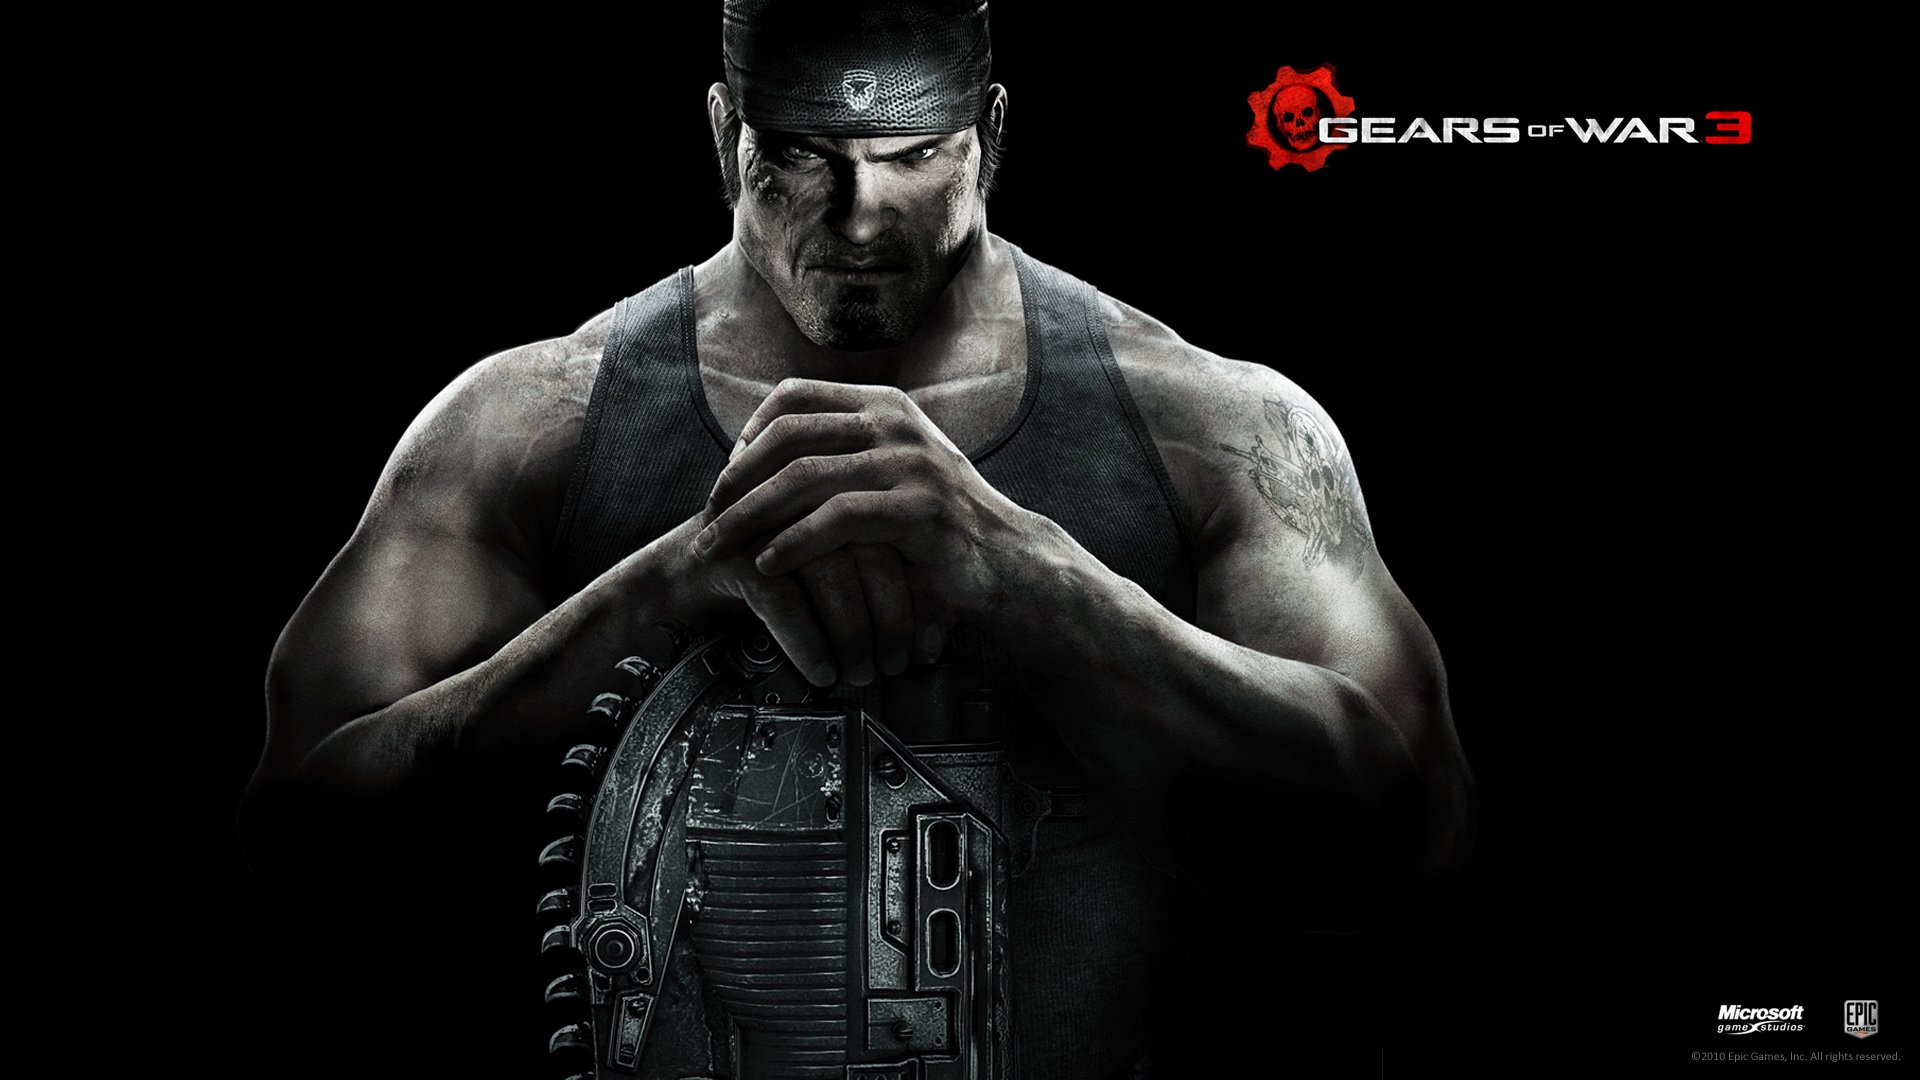 Gears Of War 3 Wallpapers: Gears Of War 3 Full HD Fondo De Pantalla And Fondo De